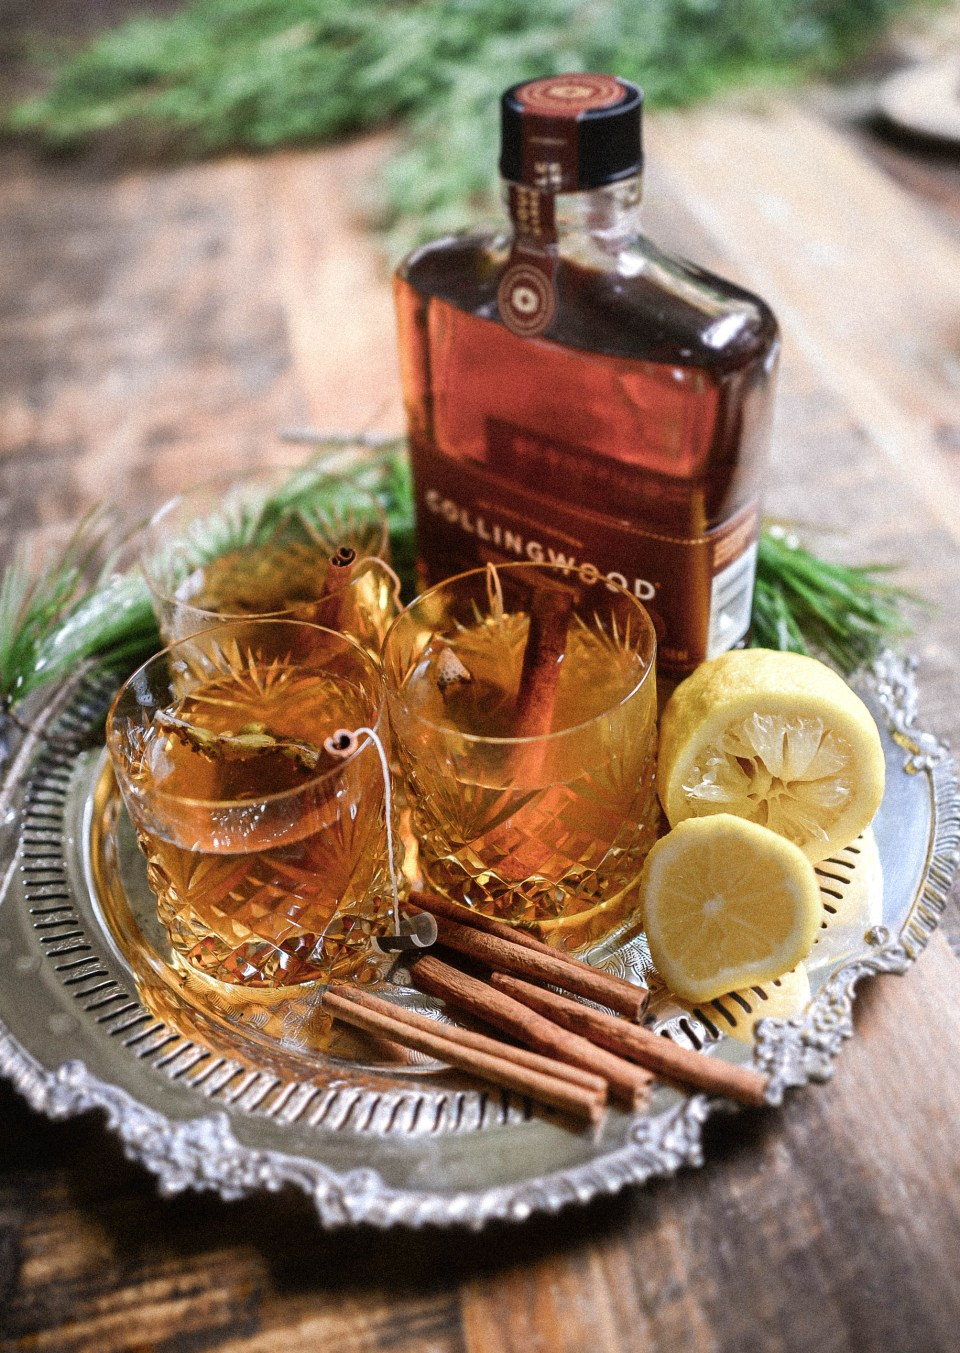 A different take on a hot toddy made with chai tea and Collingwood Whisky - a warm and spicy Chrismtas cocktail!